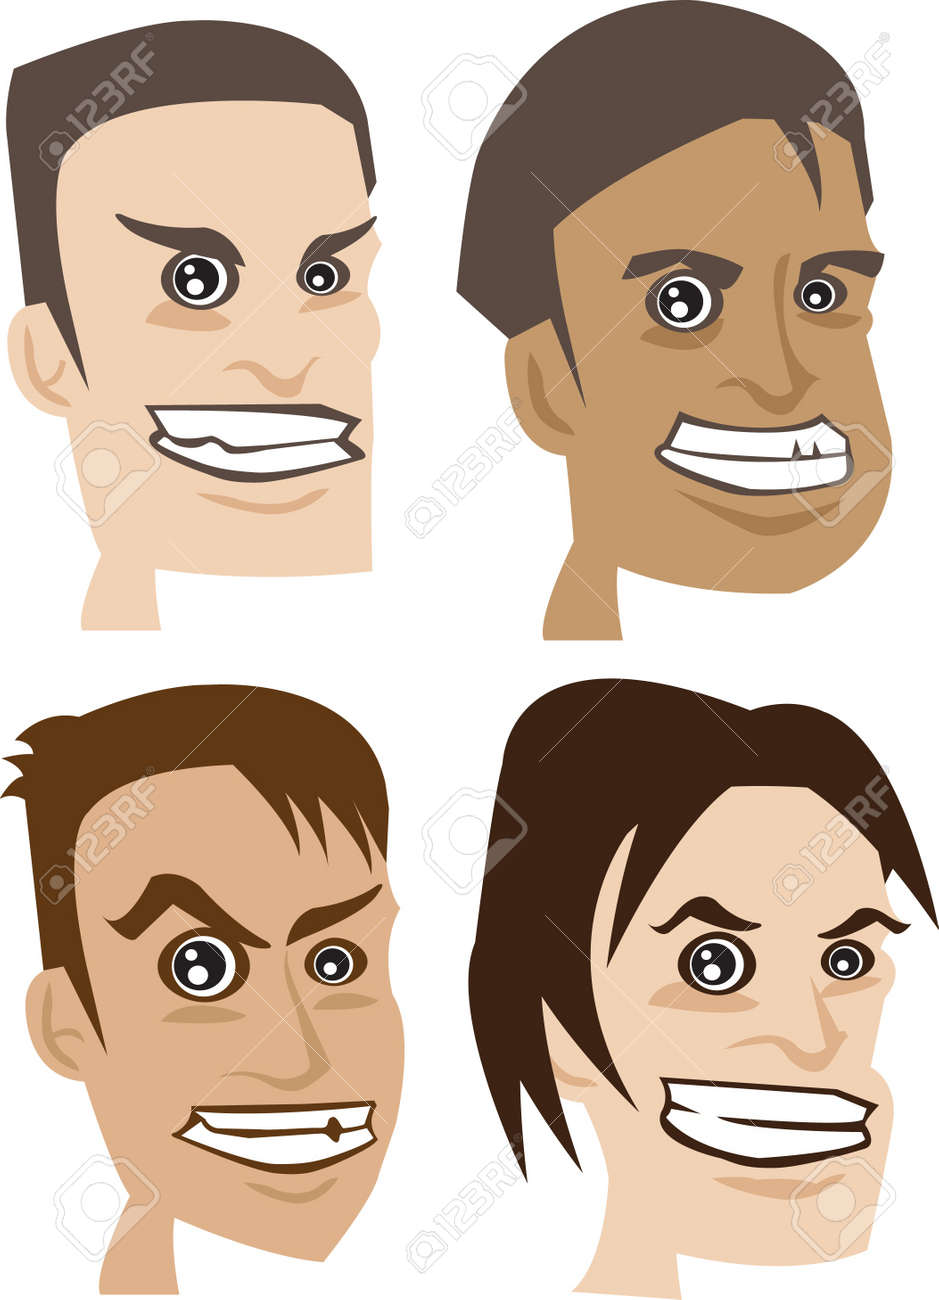 Four faces of man with different hair style and expression Stock Vector - 14487546